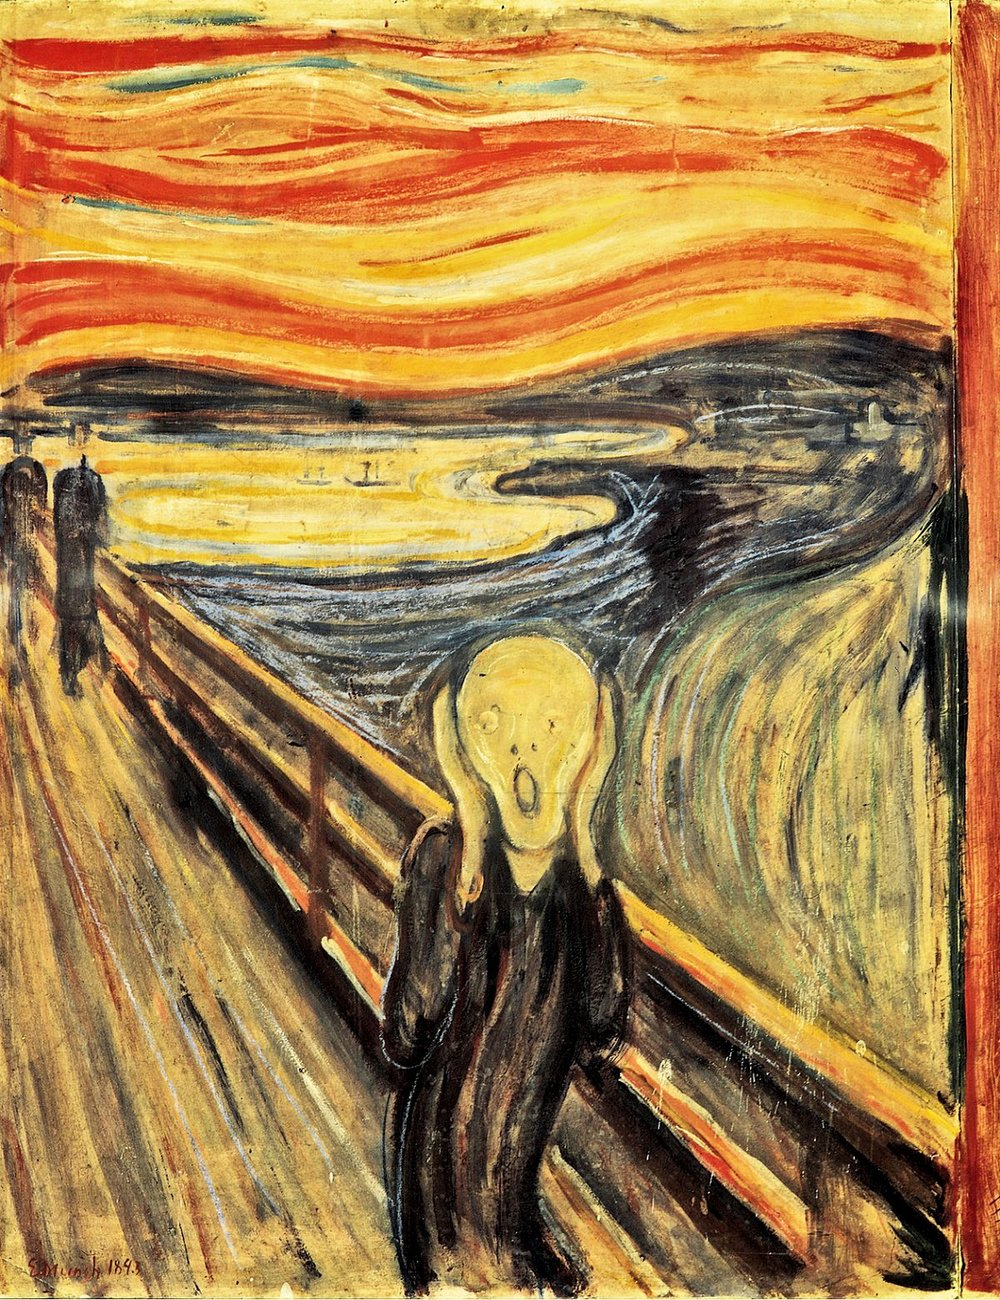 Edvard Munch, The Scream, 1893.  Image Source